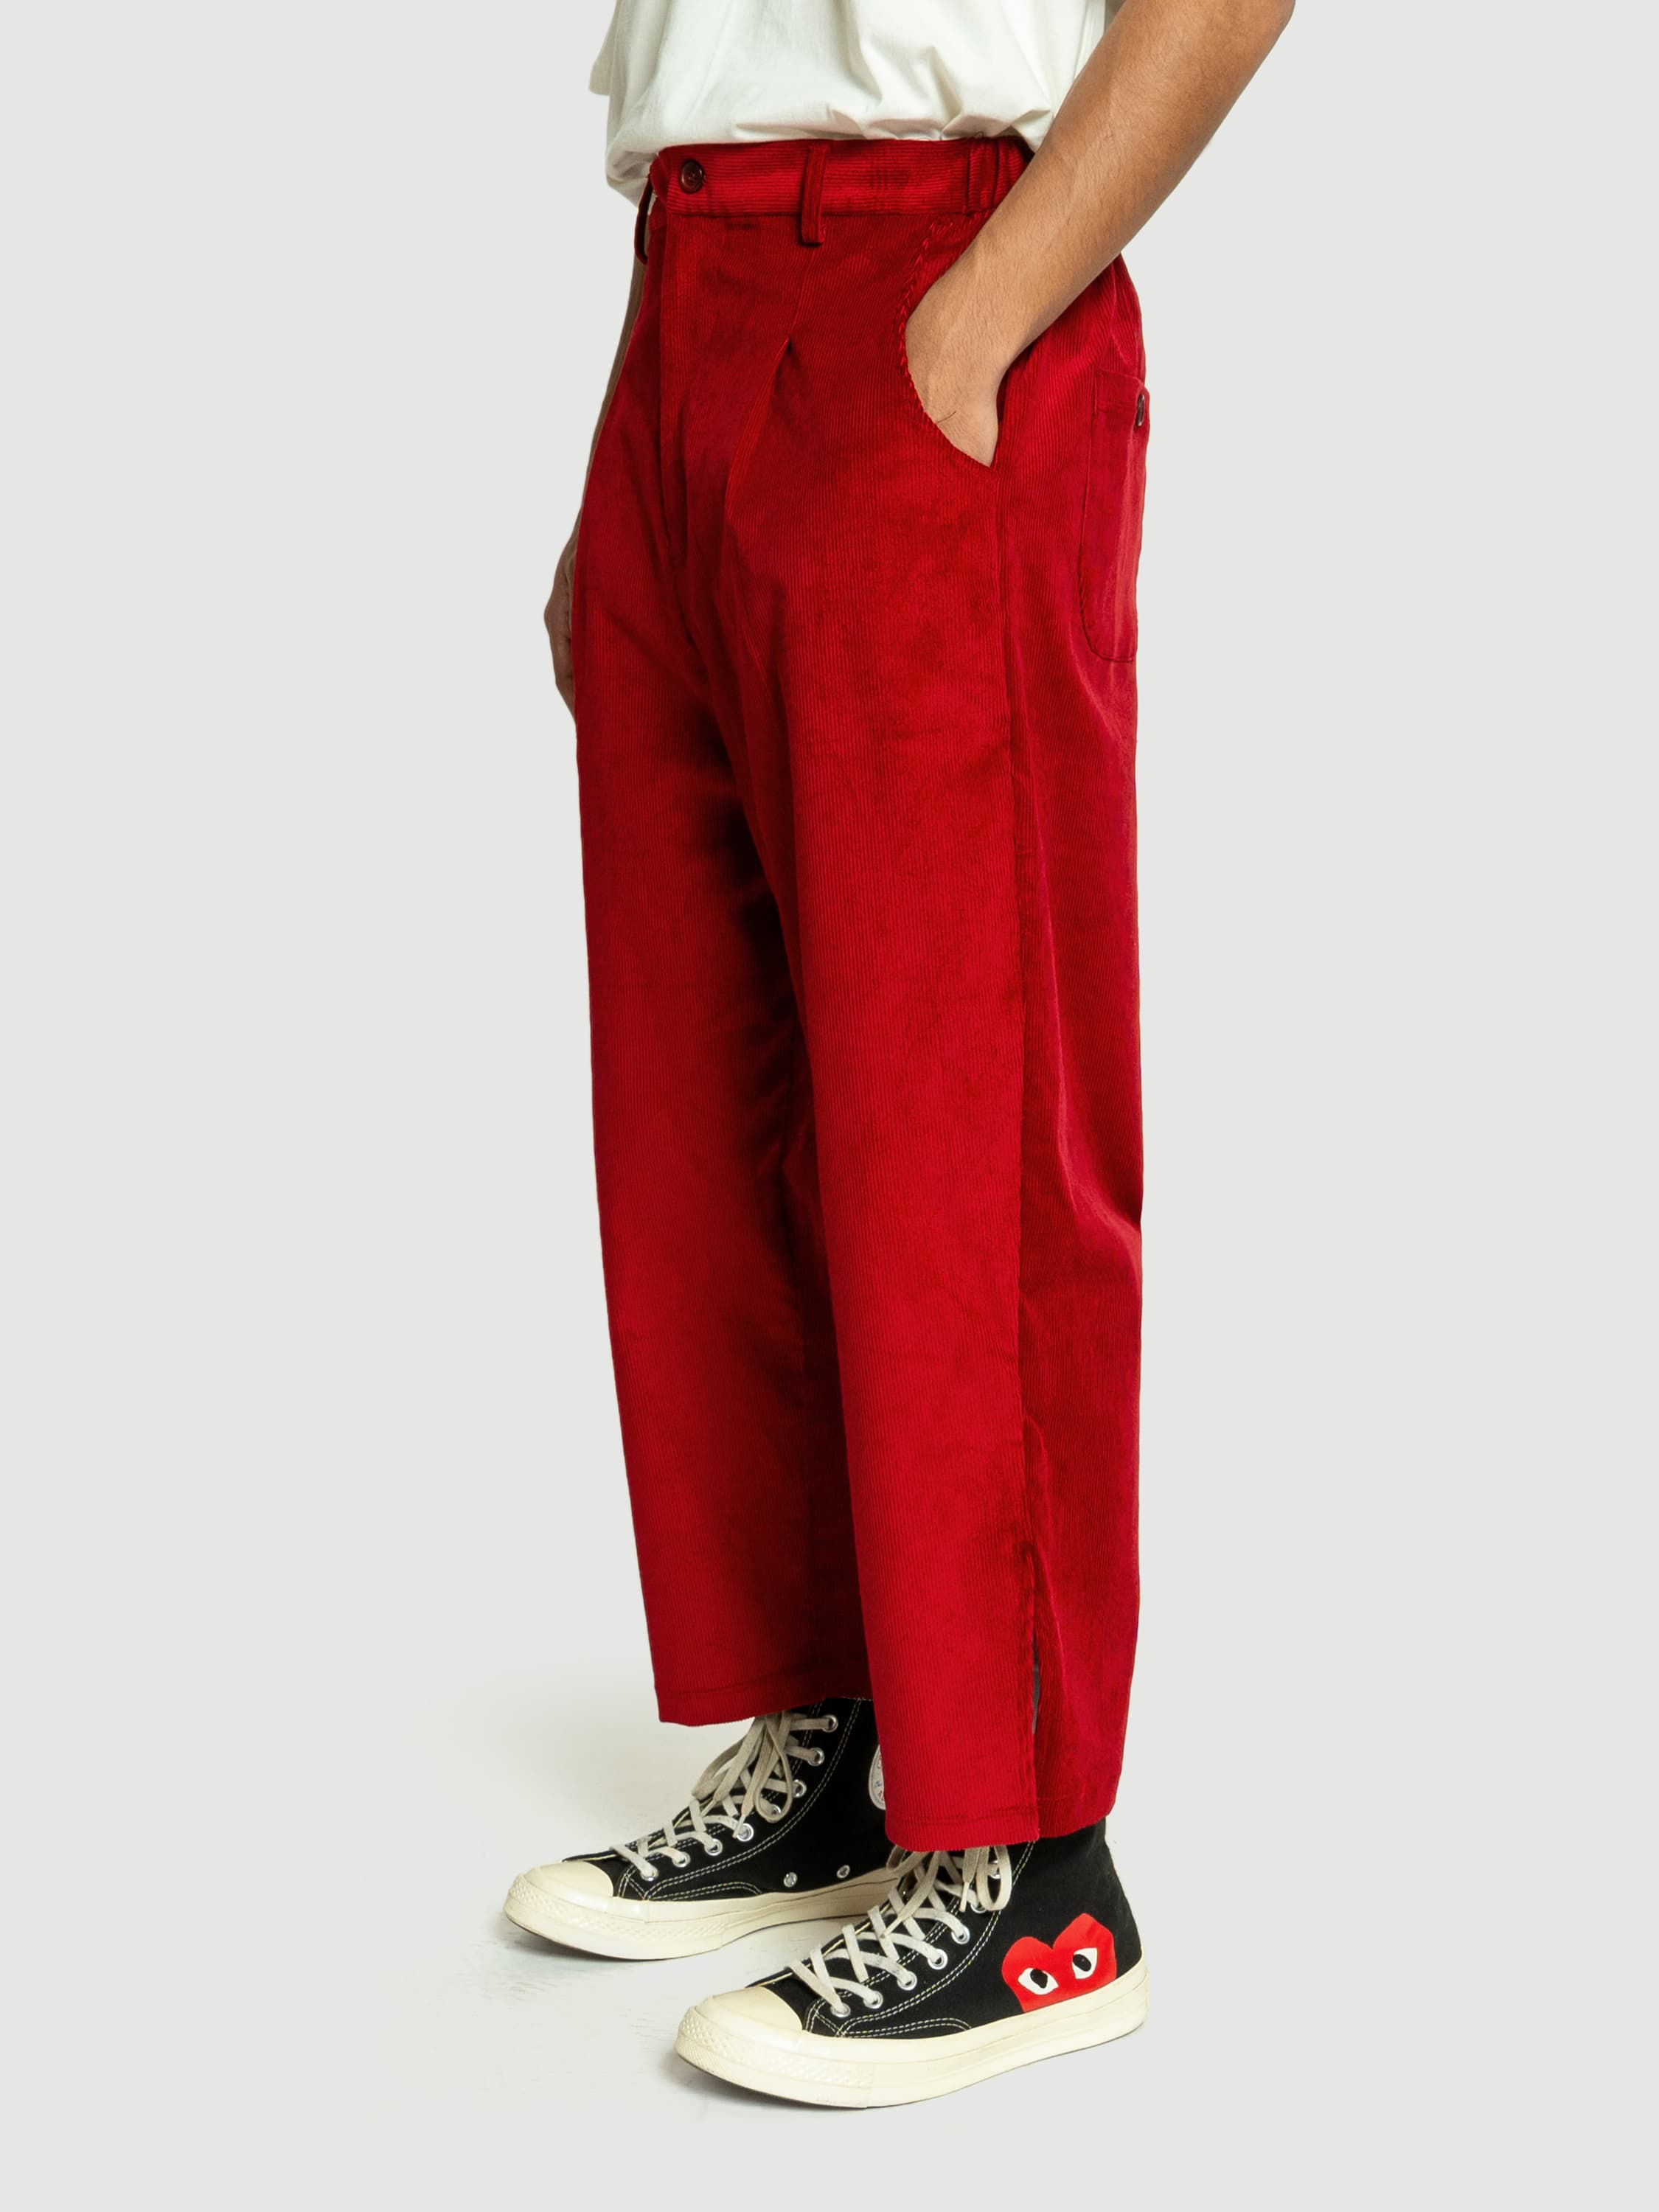 Baggy Red Corduroy Pants